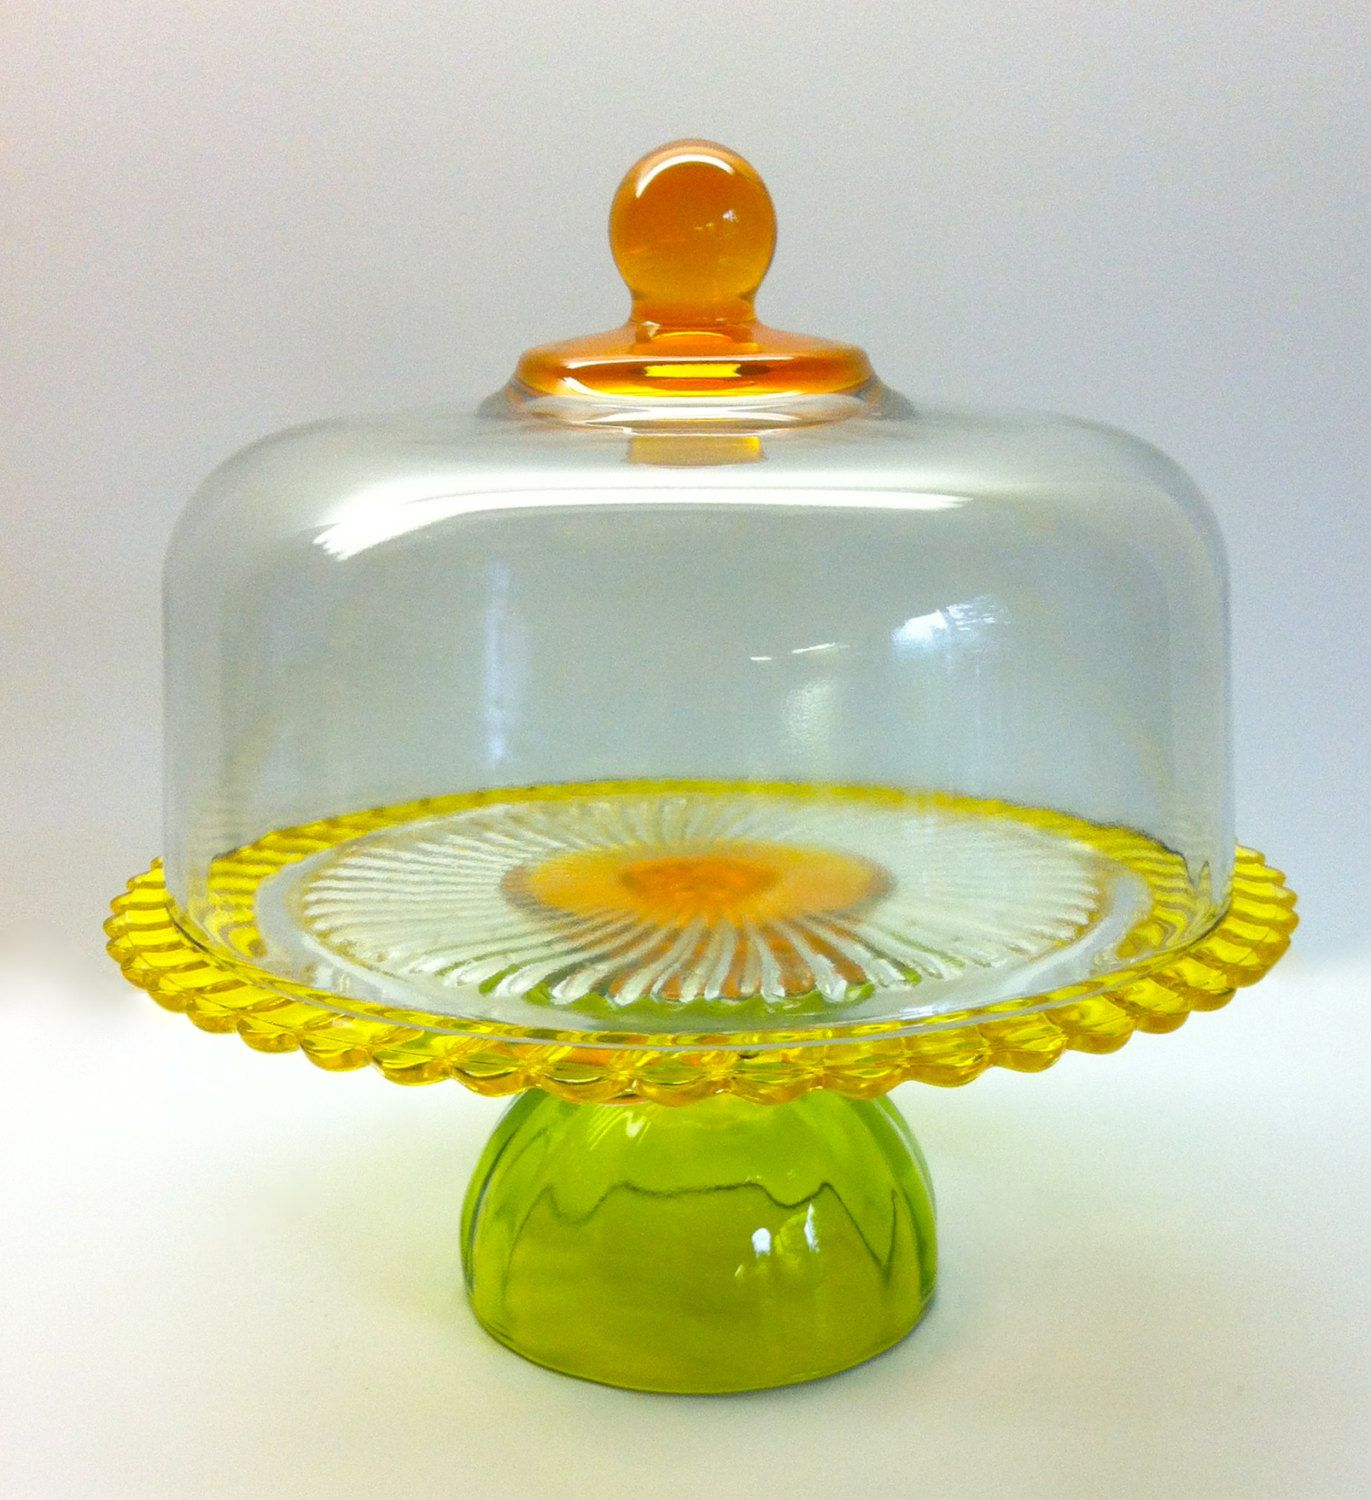 Vintage Cake Stand with Dome in Fun Yellow Orange and Green